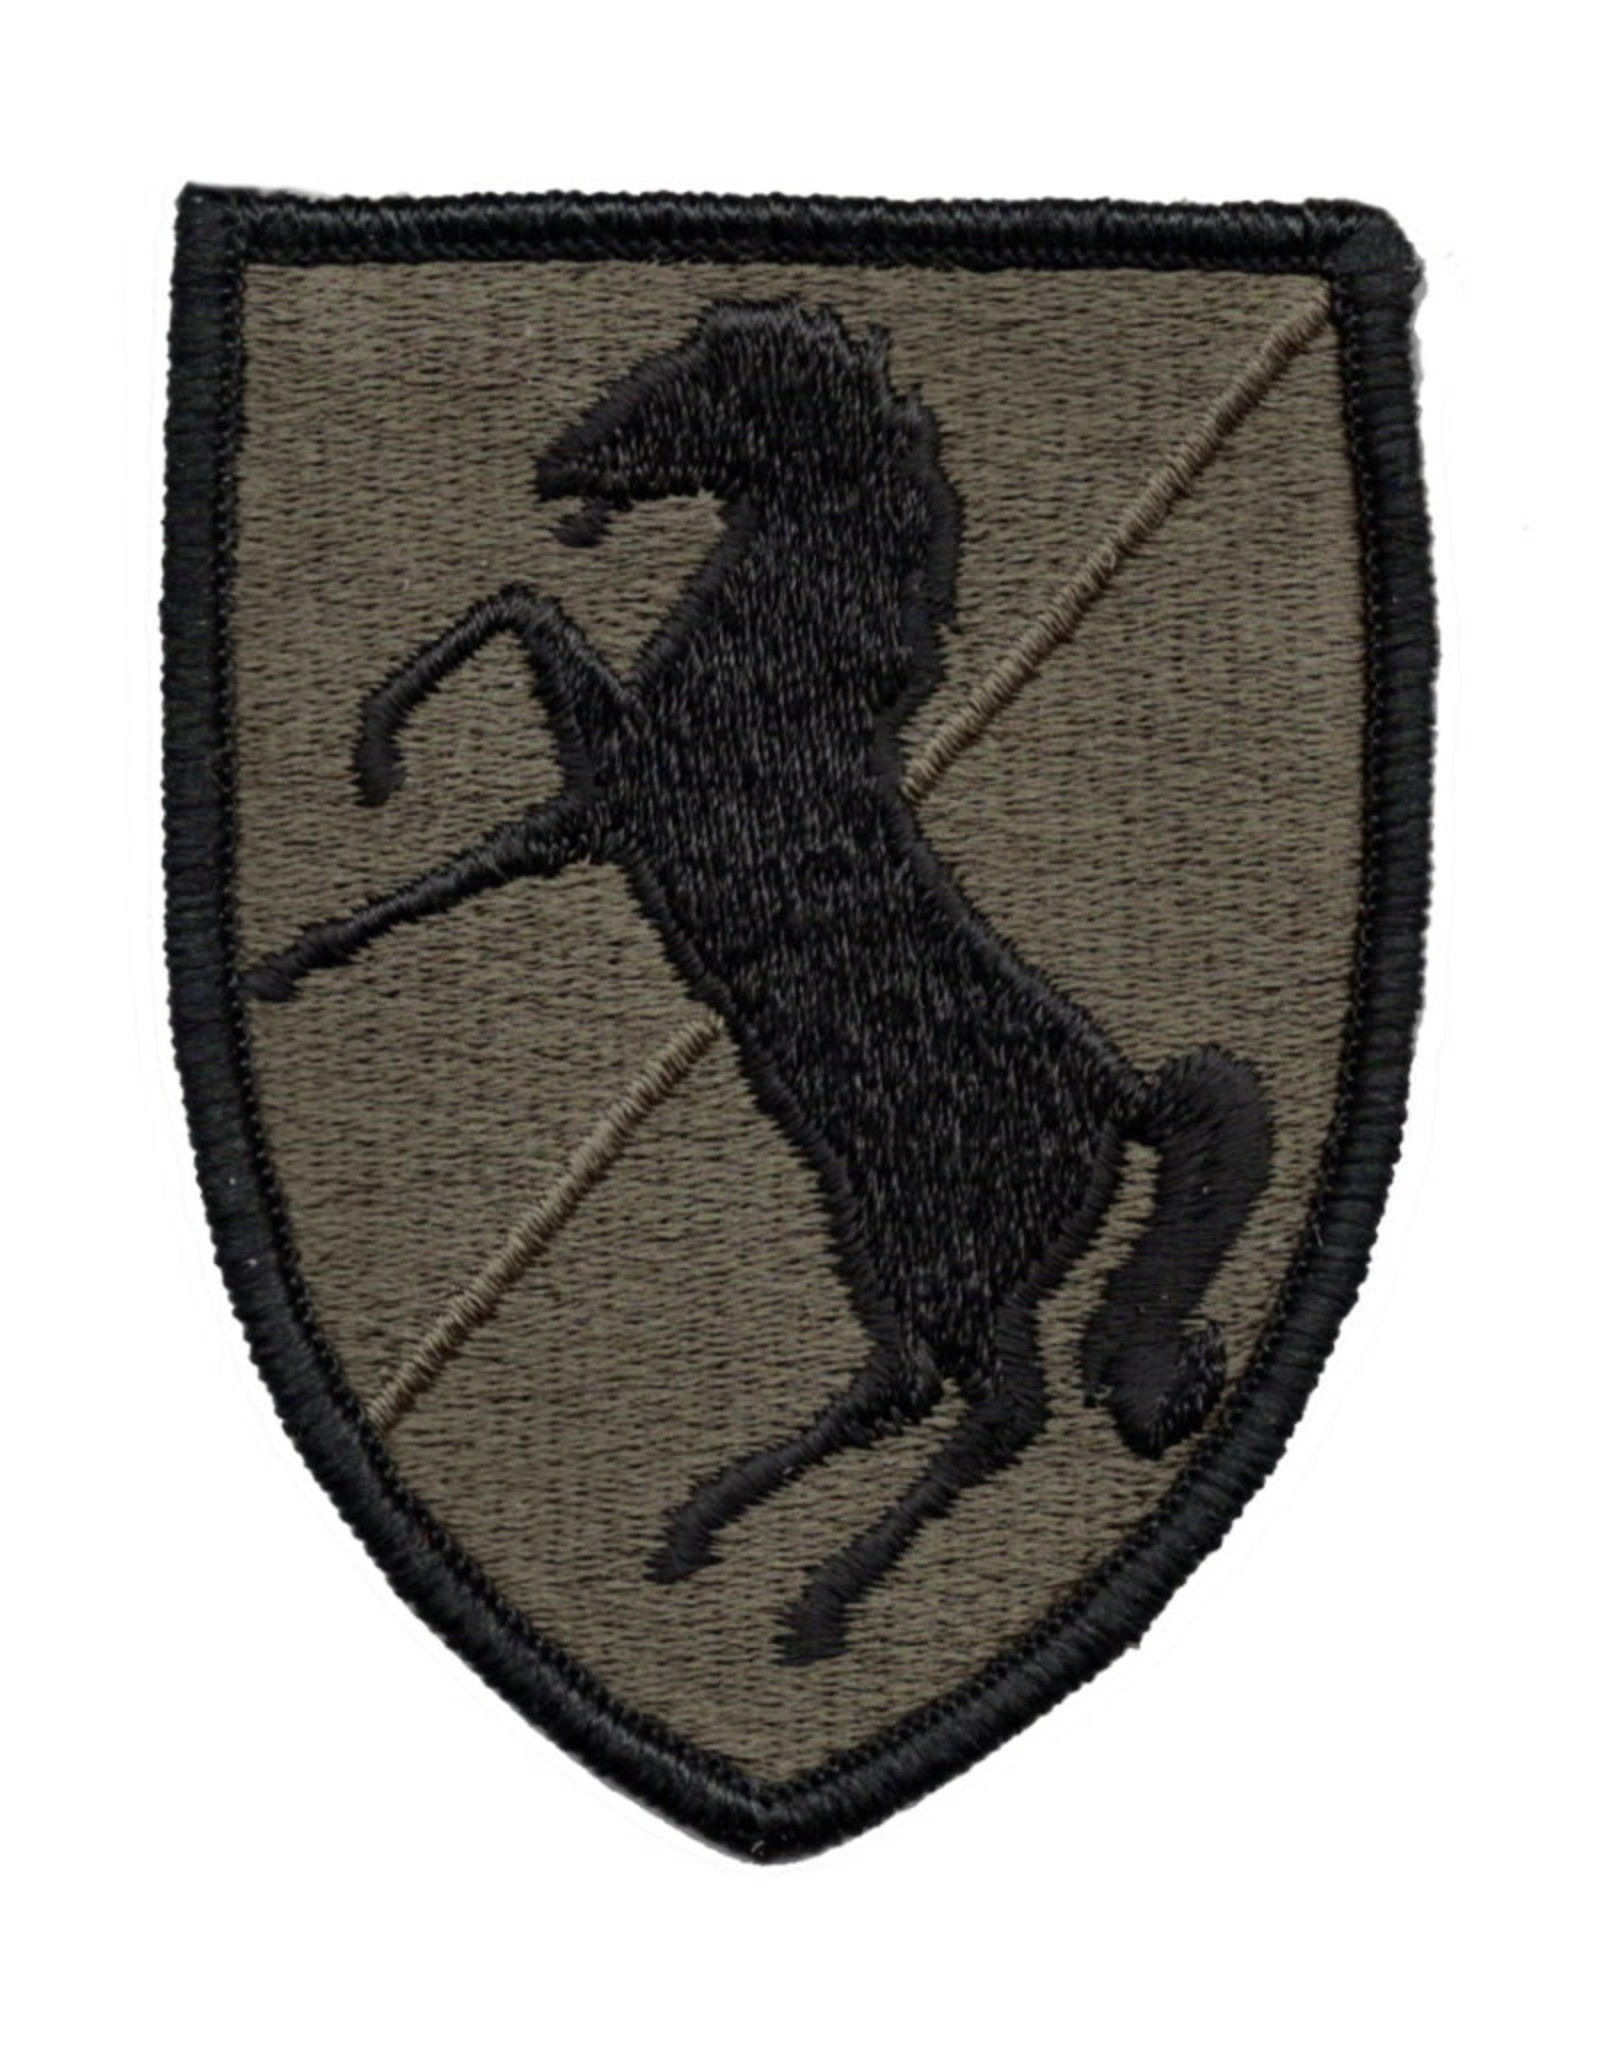 MidMil Embroidered Subdued 11th Cavalry Patch Black on Olive Drab